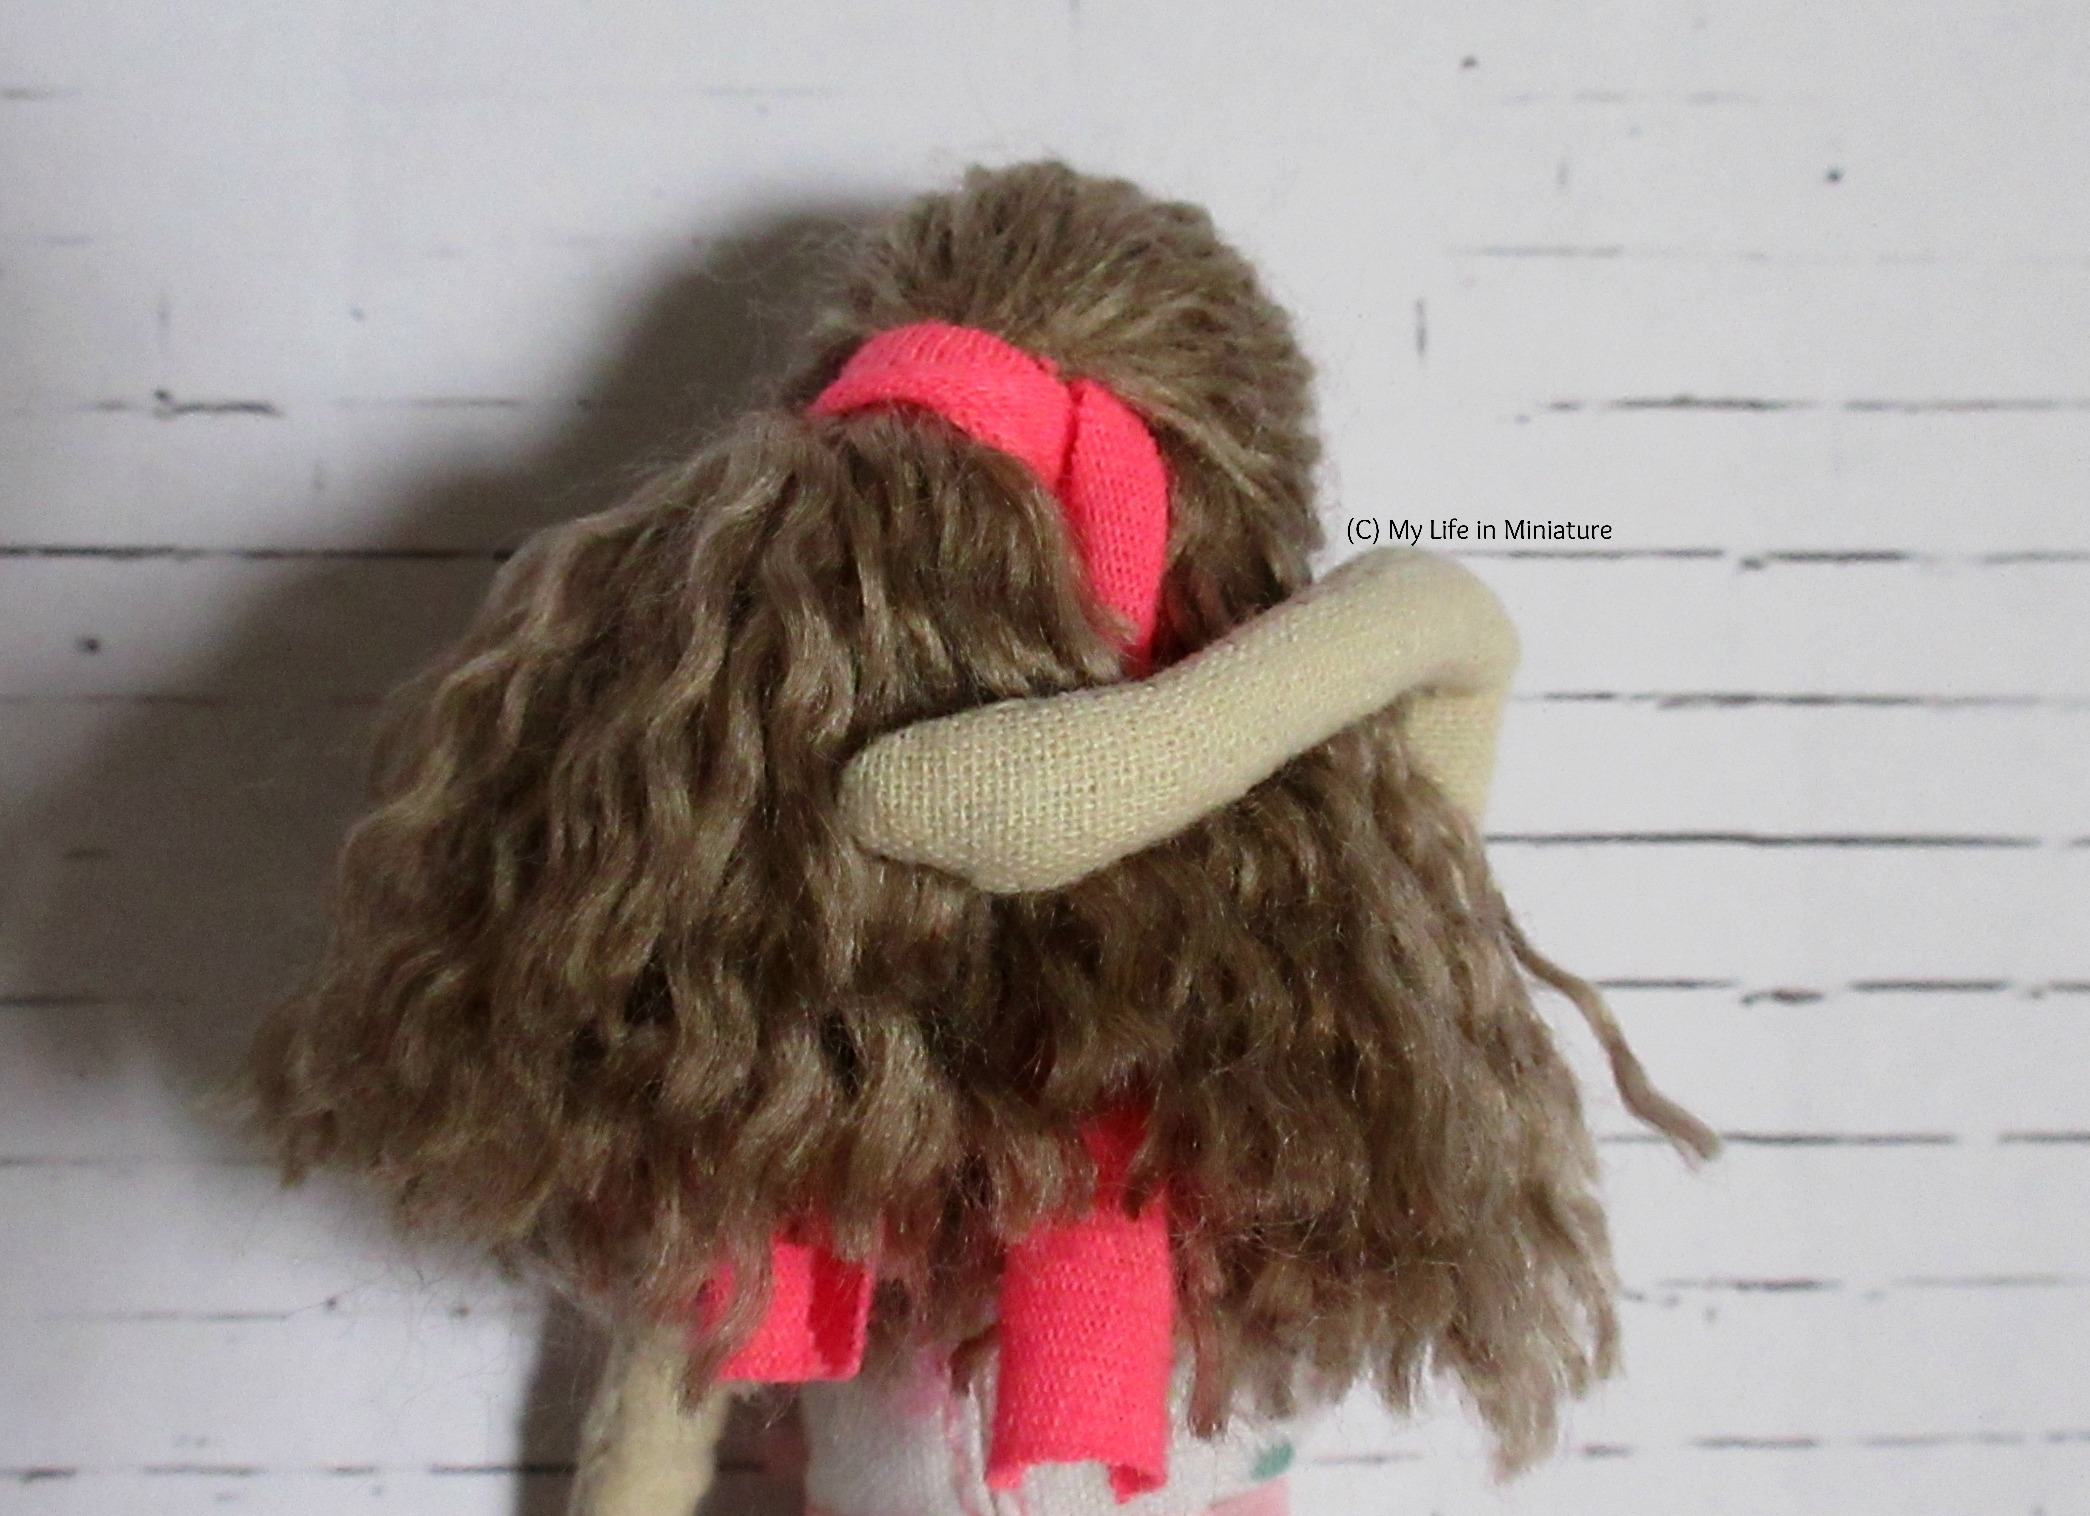 The muslin handmade doll stands against a white brick background, back to the camera. One hand is smoothing down her hair, in which is visible a strip of pink jersey fabric tying back half the hair.